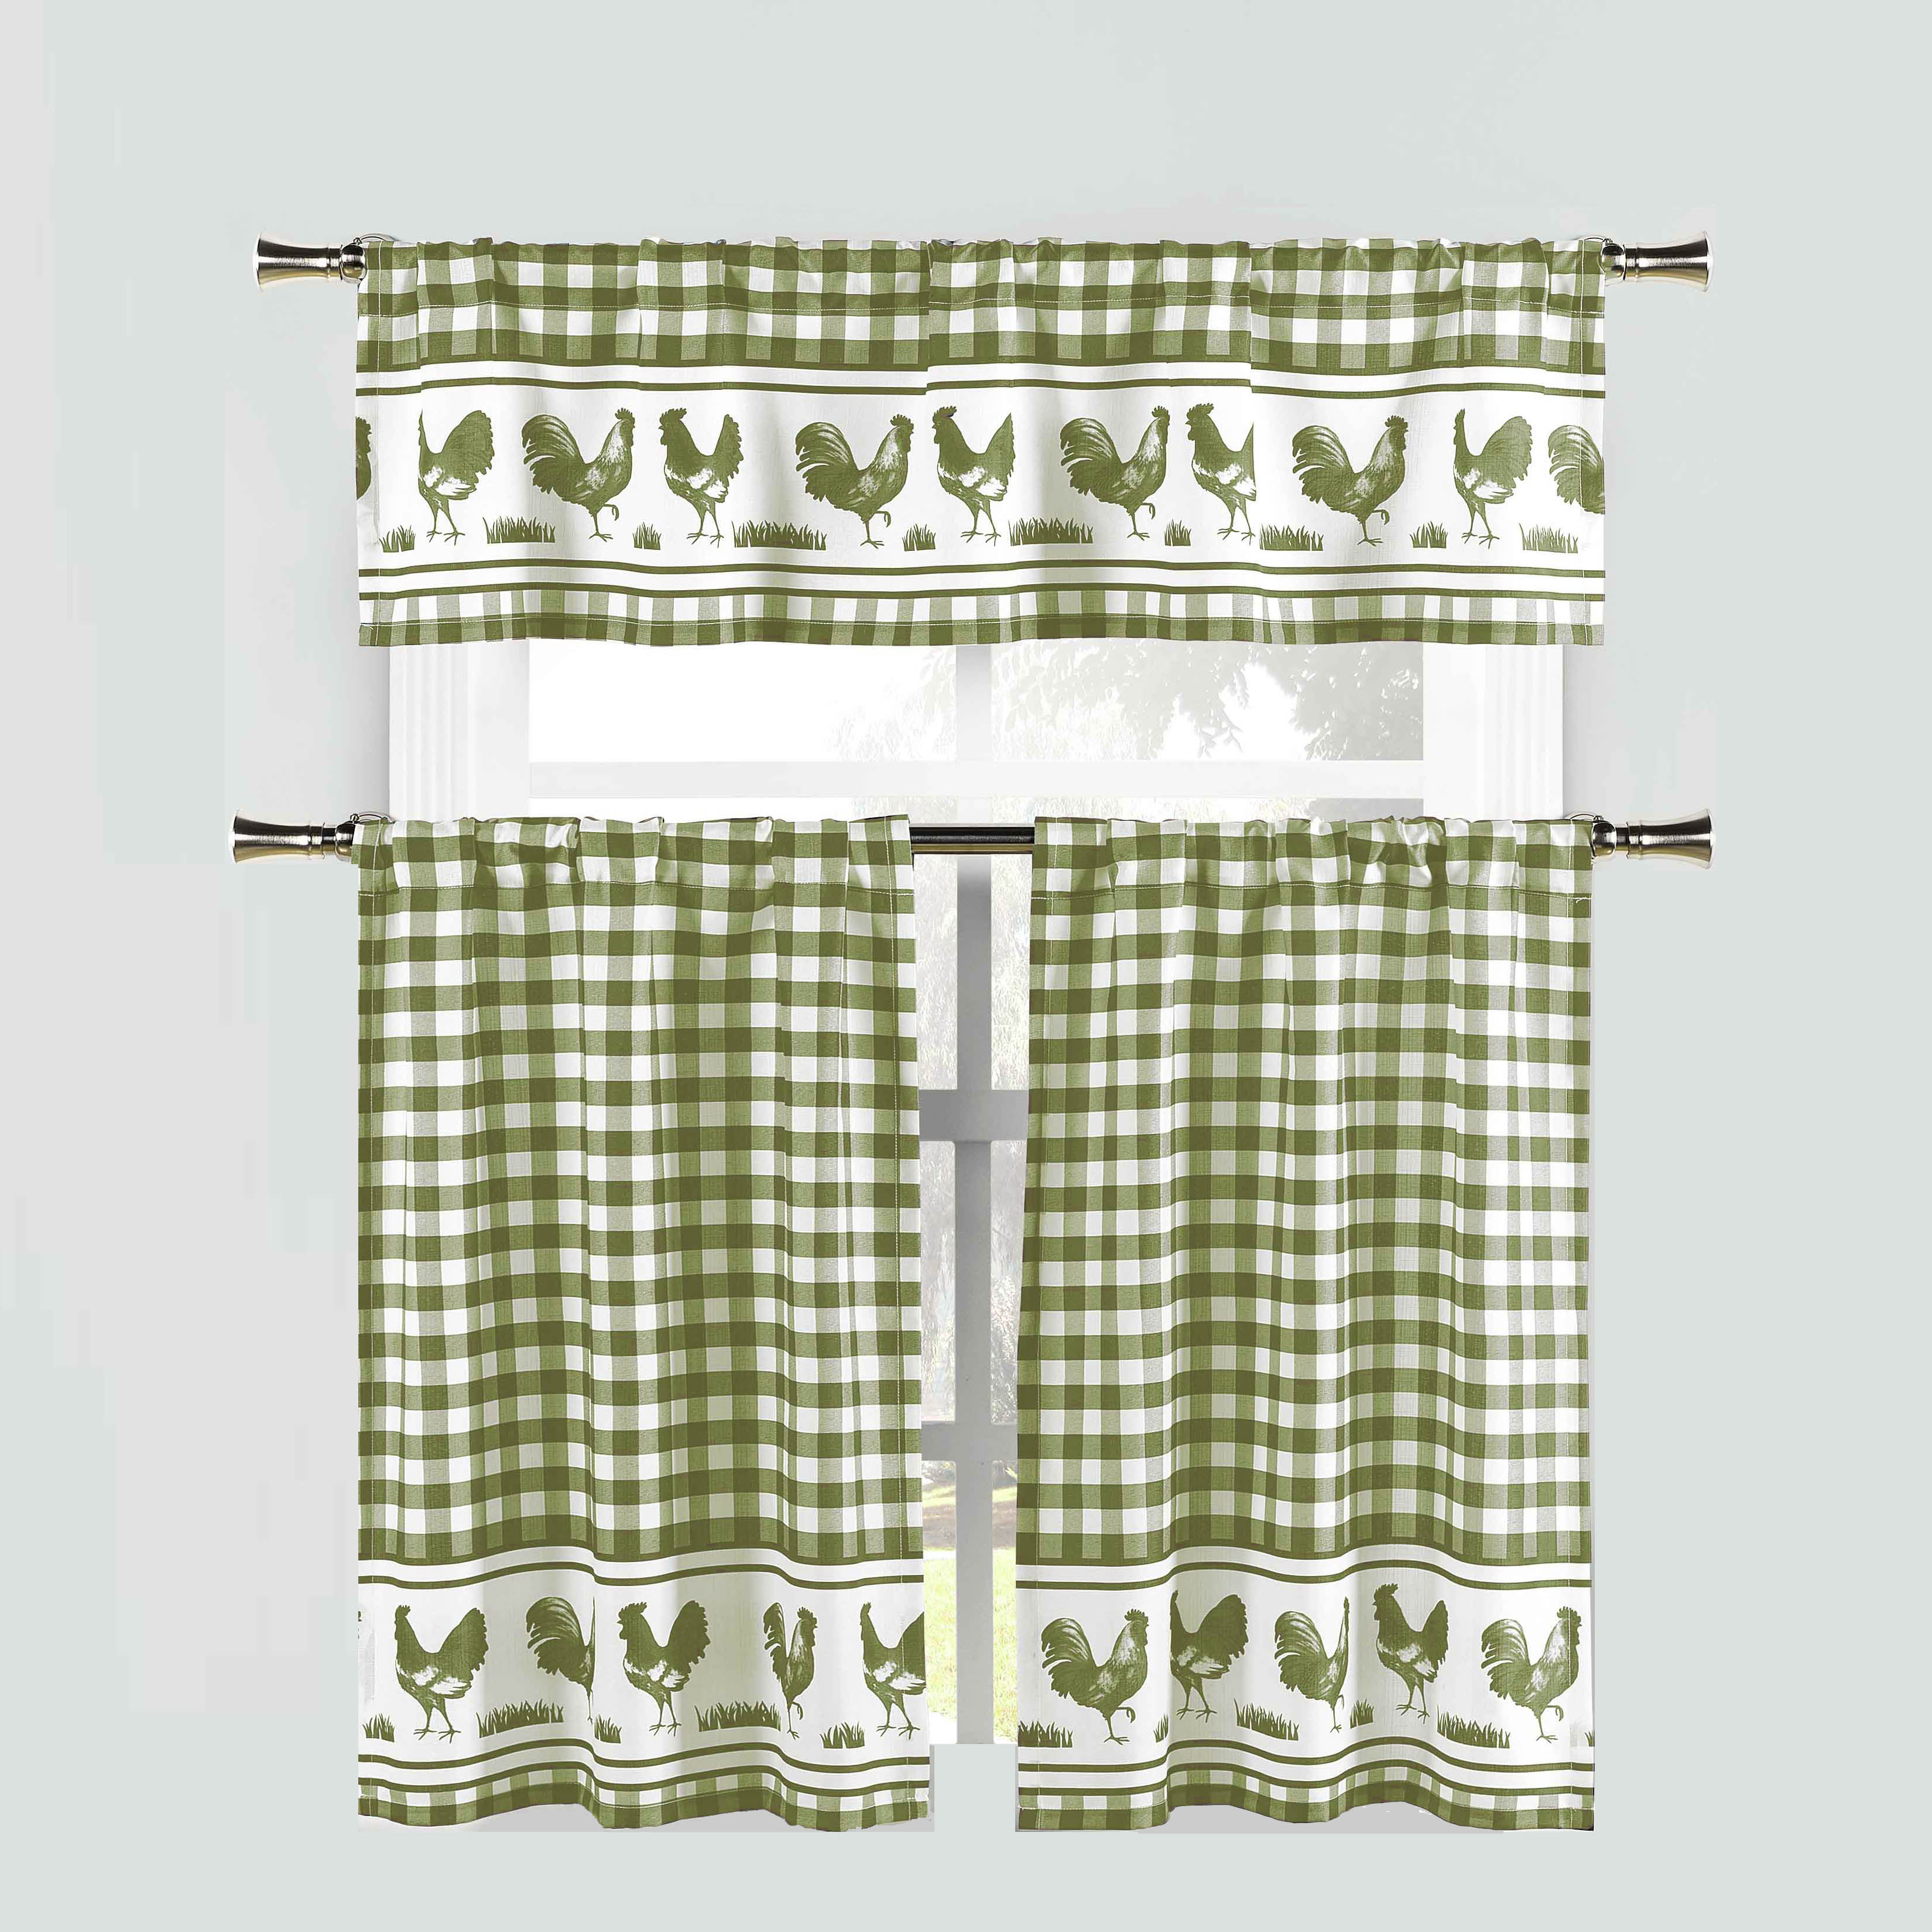 Sage Green 3 Piece Window Curtain Set: Gingham Check and Rooster Design